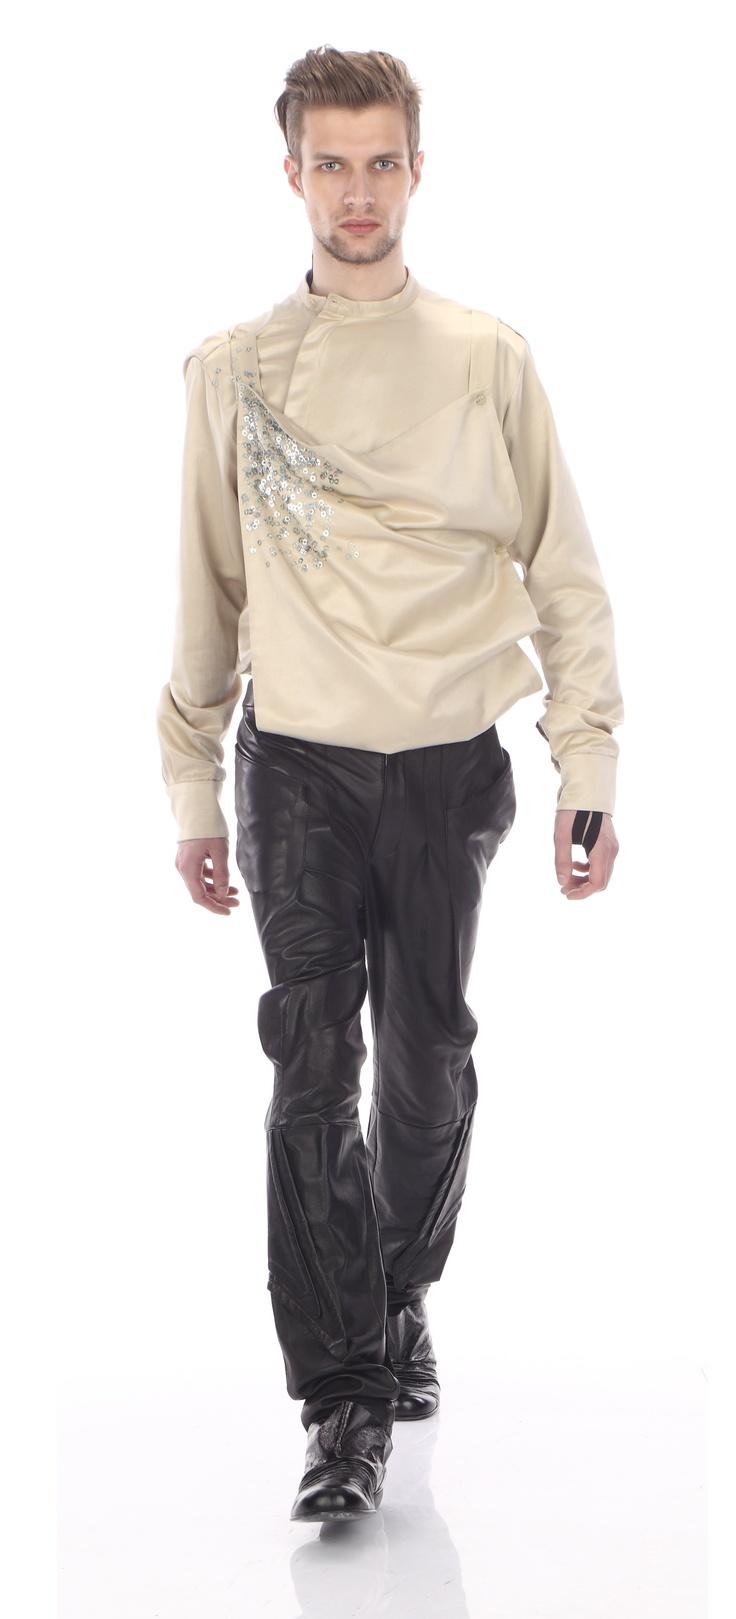 Shirt- apron ( satin cotton), trousers ( leather), shoes ( leather)